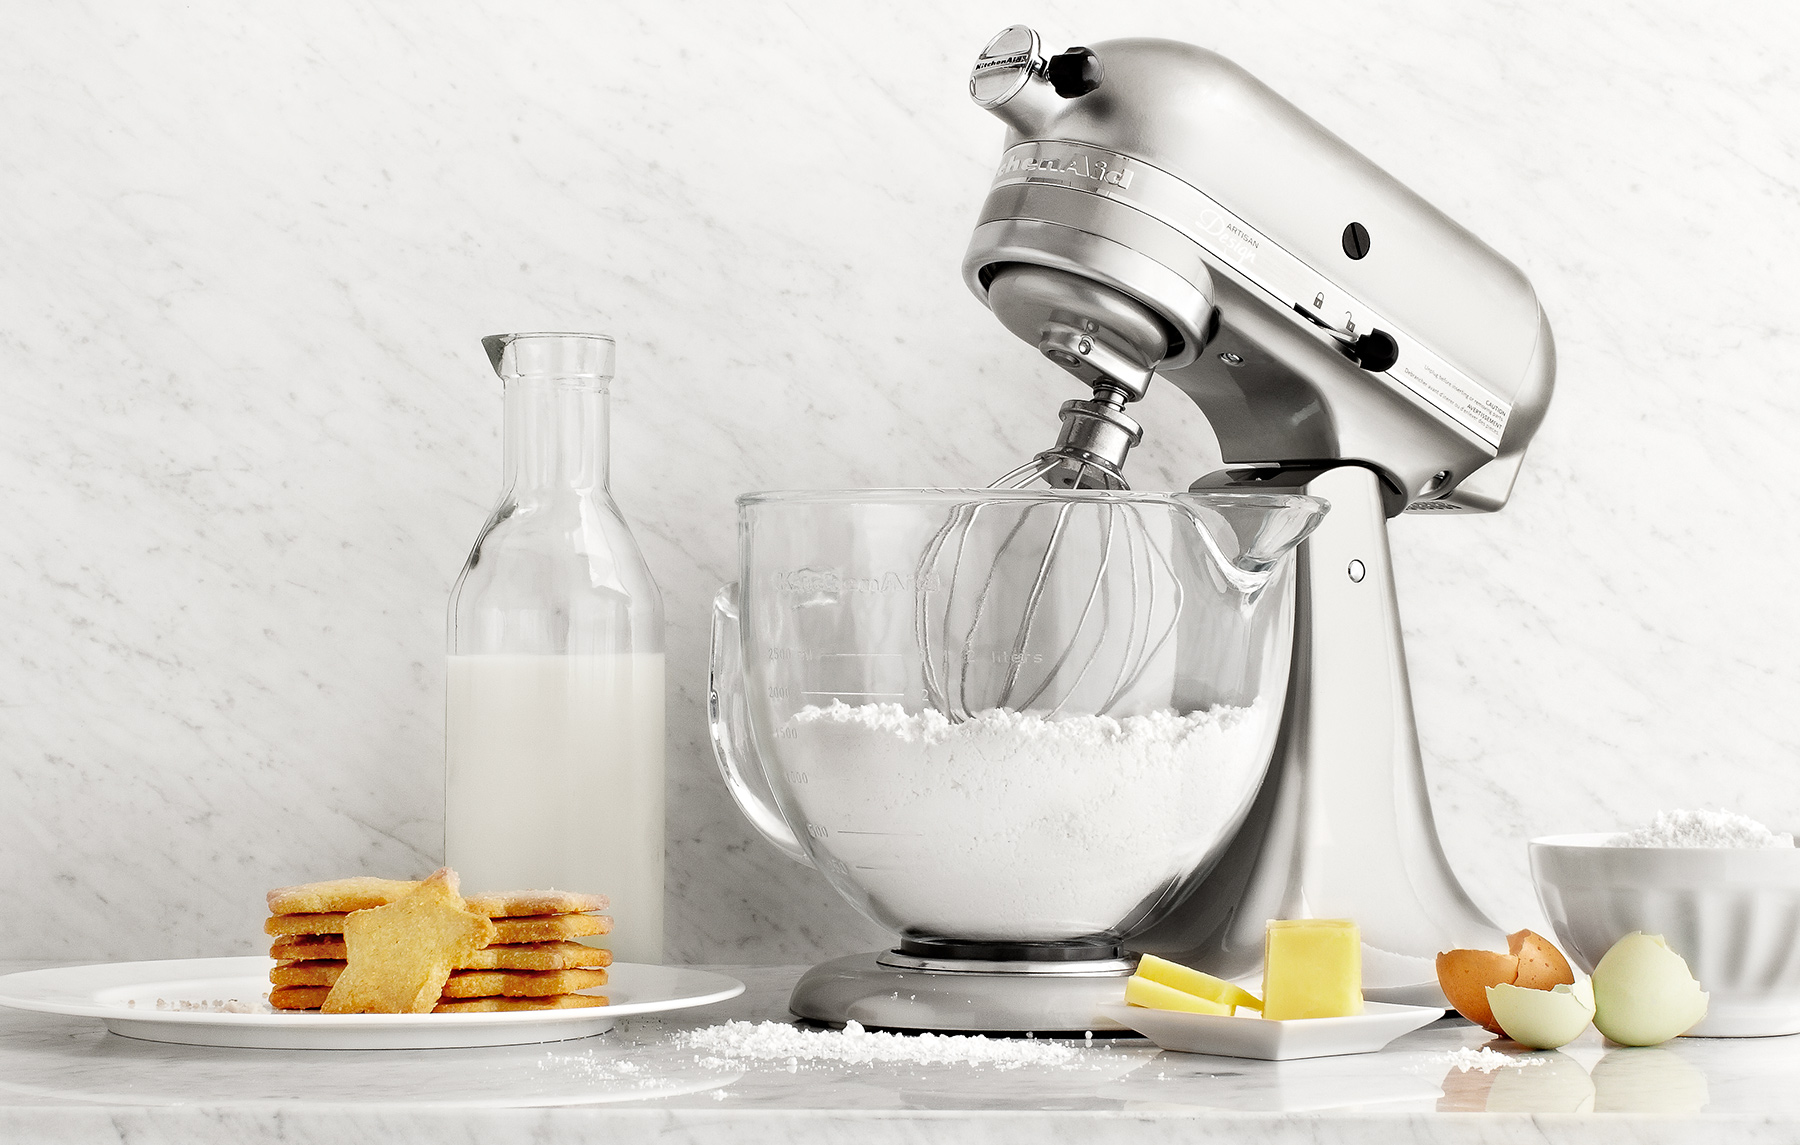 Kitchen Aid Mixer with baking goods | Dovis Bird Agency